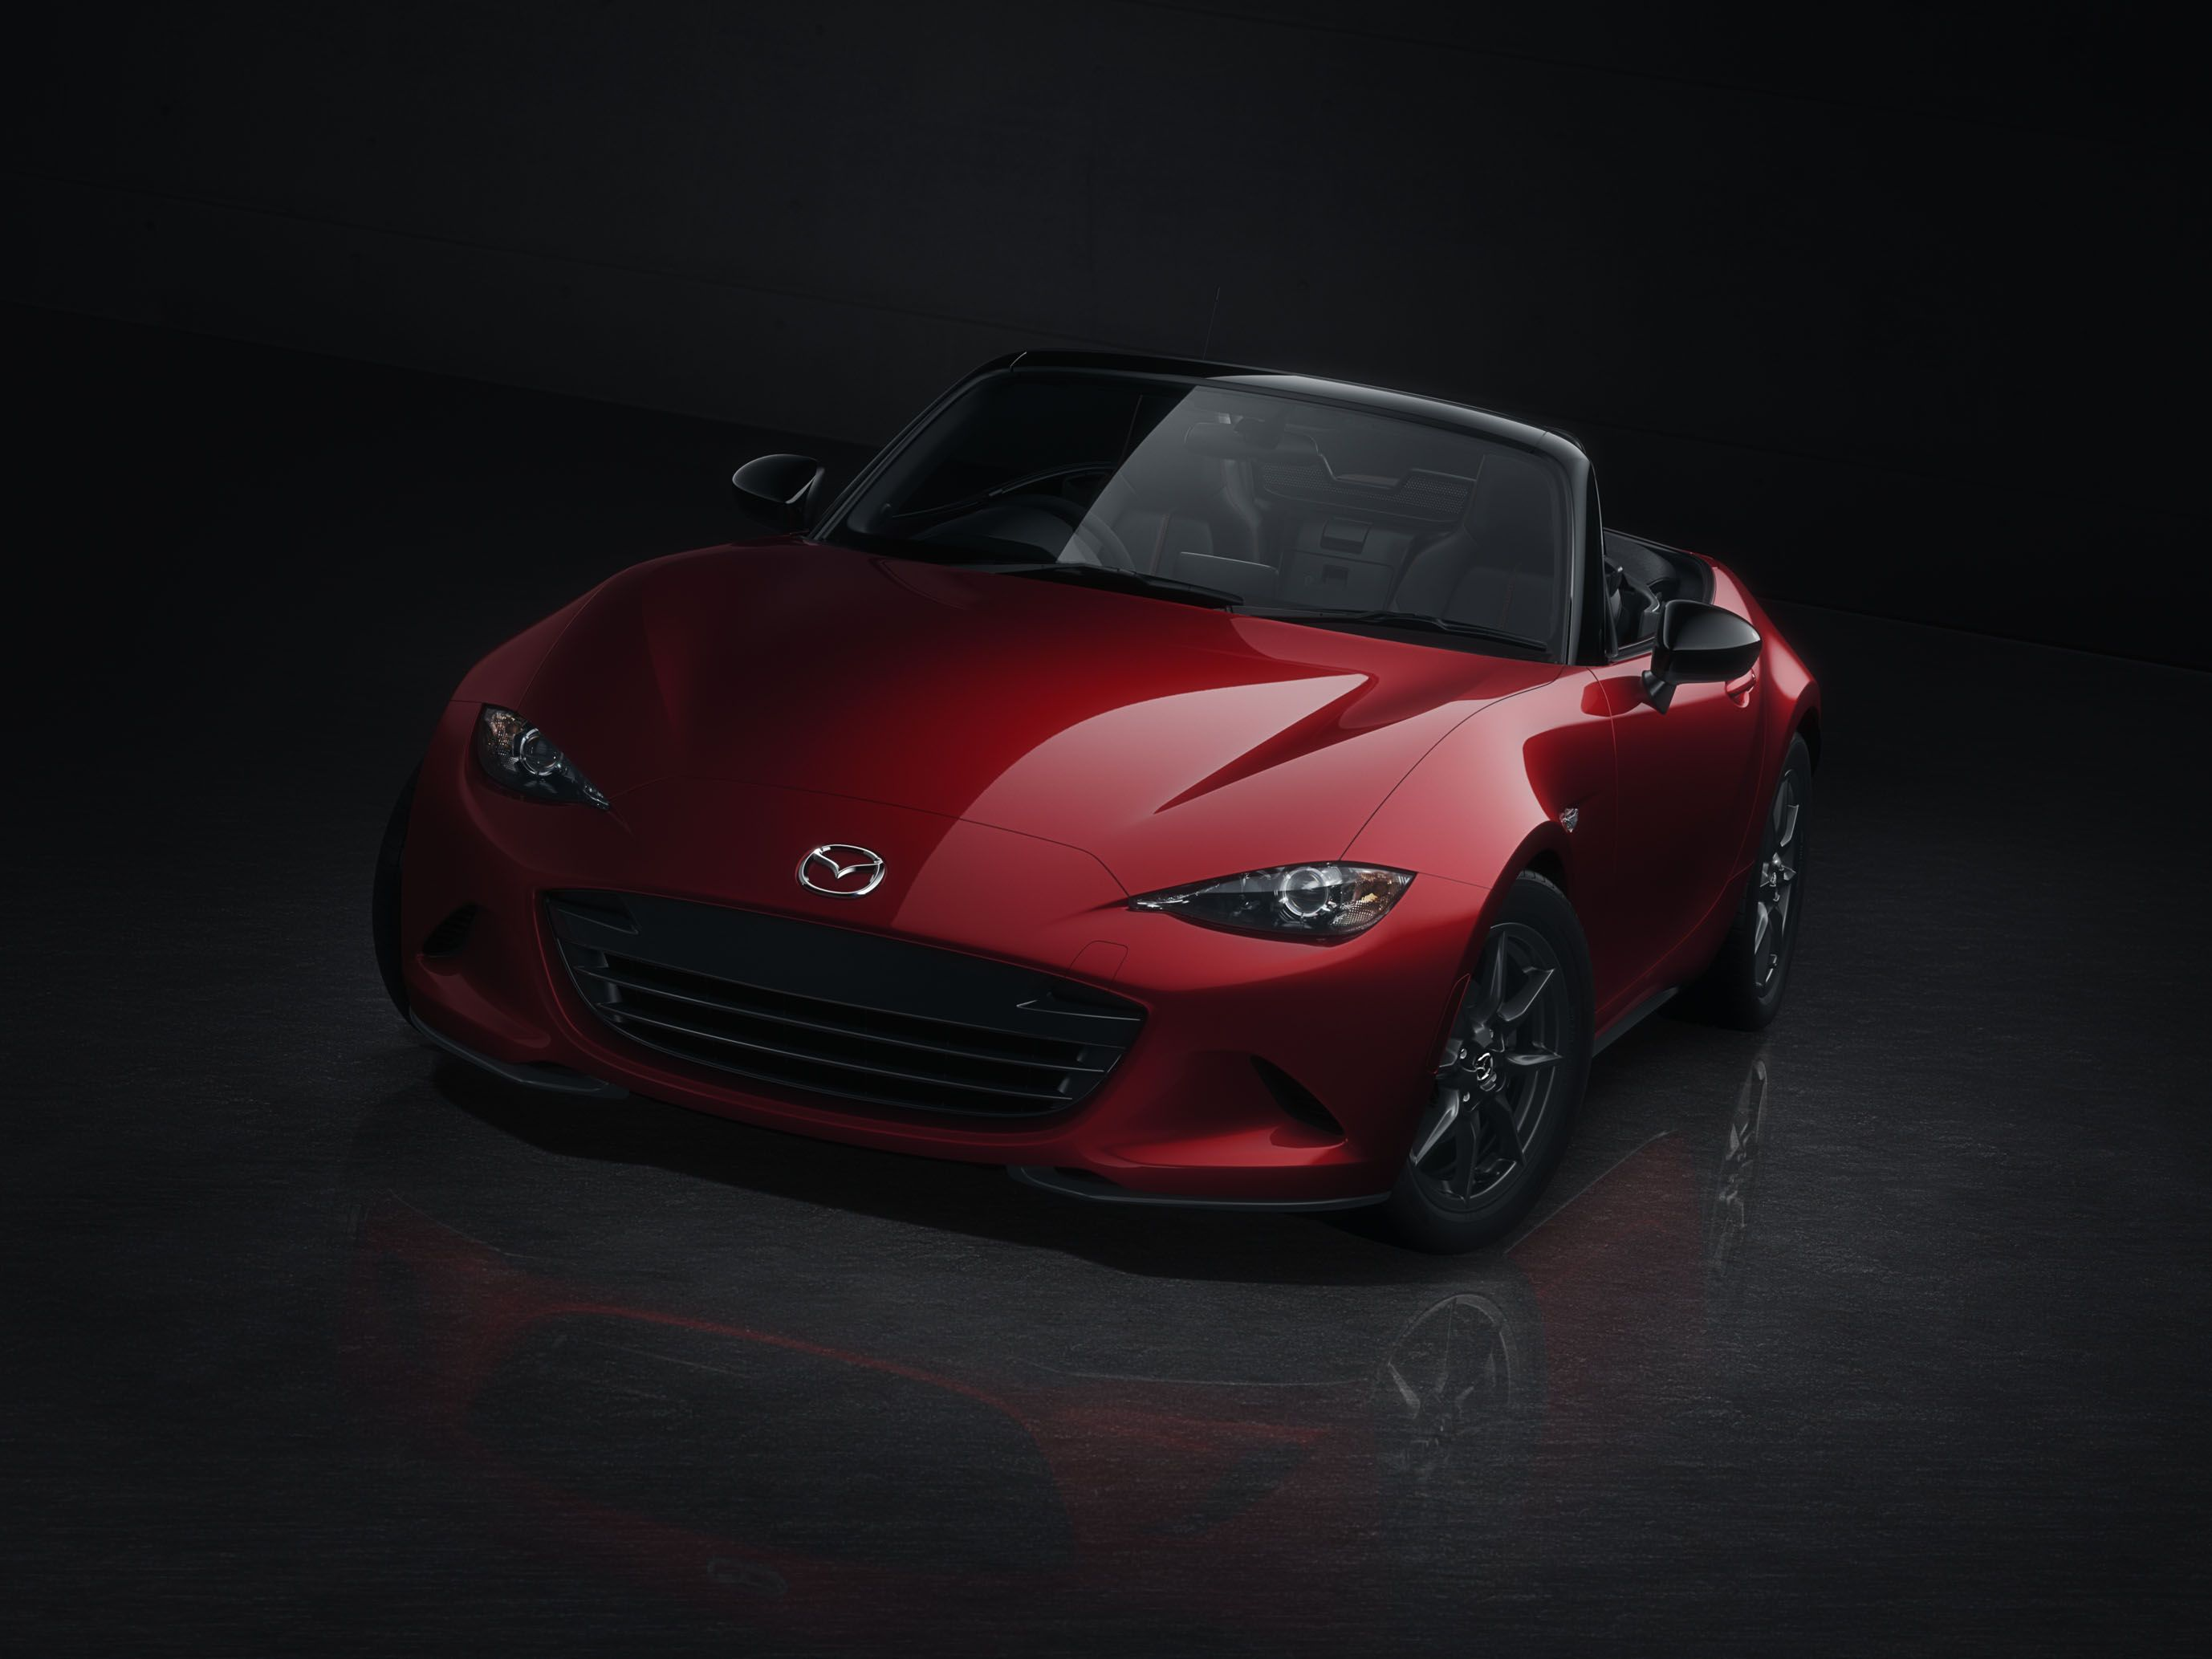 Last week mazda finally unveiling the 2016 mazda miata now i ve been a huge fan of the miata since it s inception and every generation seems to gets